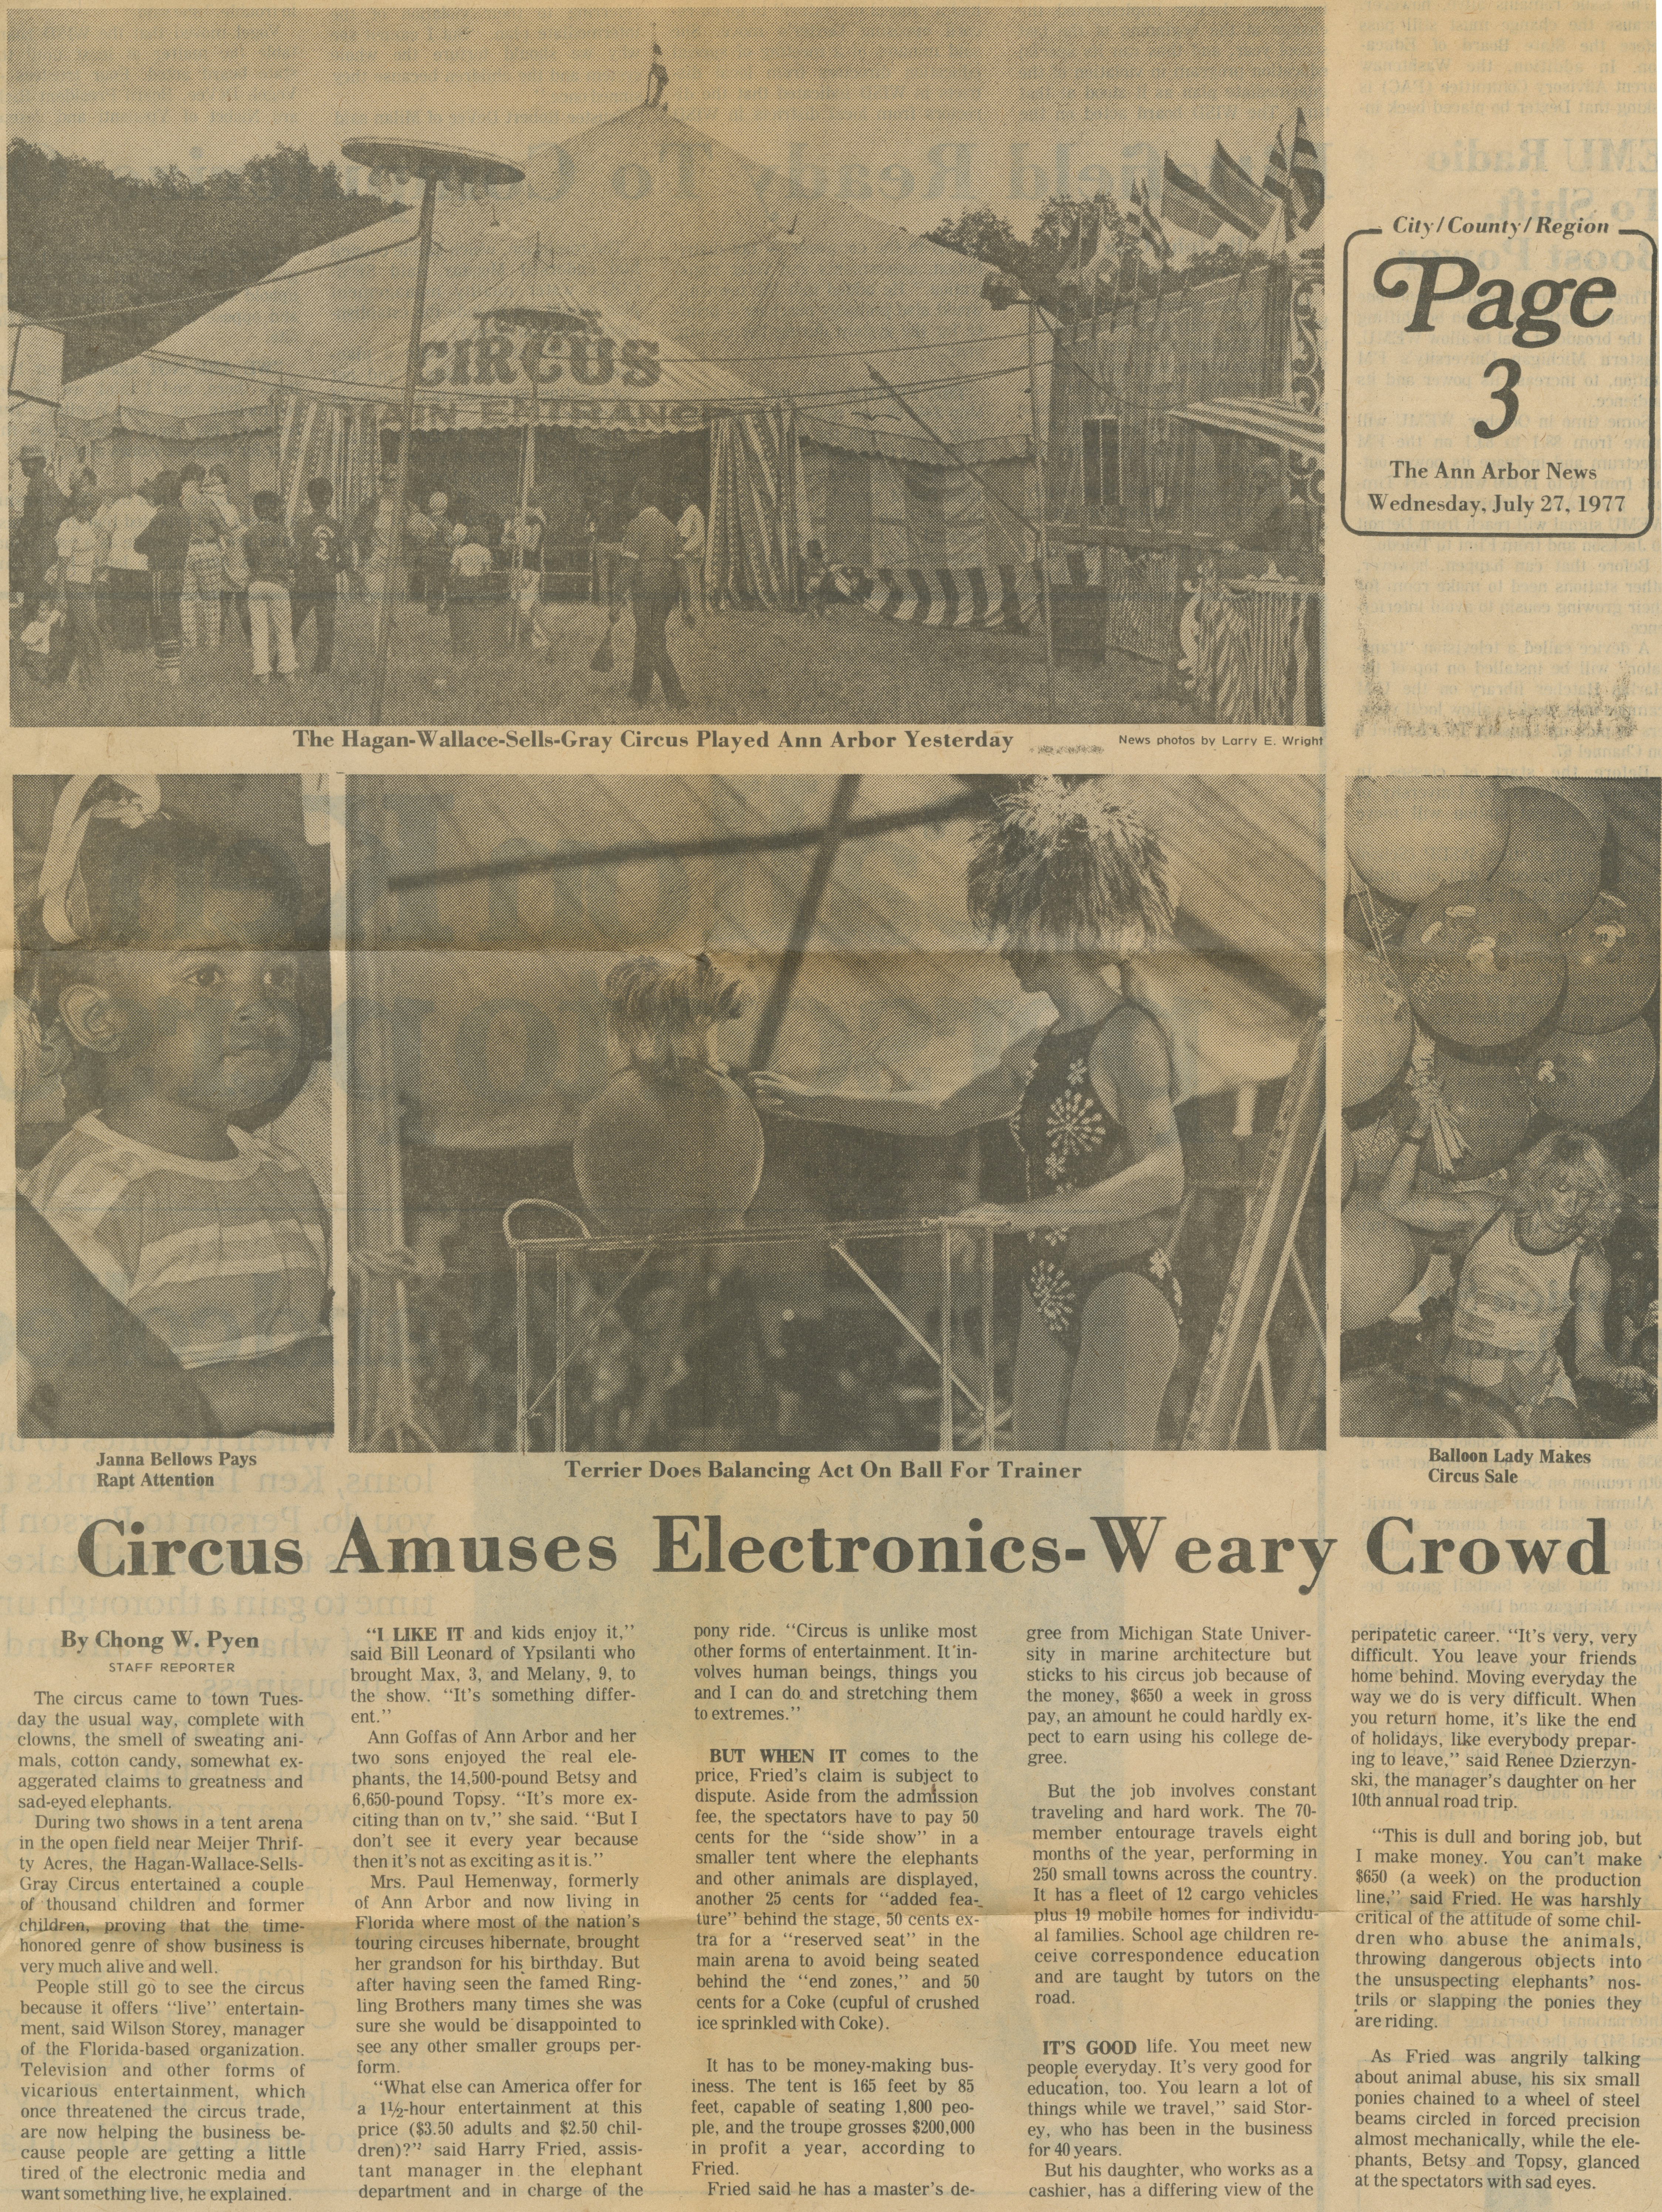 Circus Amuses Electronics-Weary Crowd image